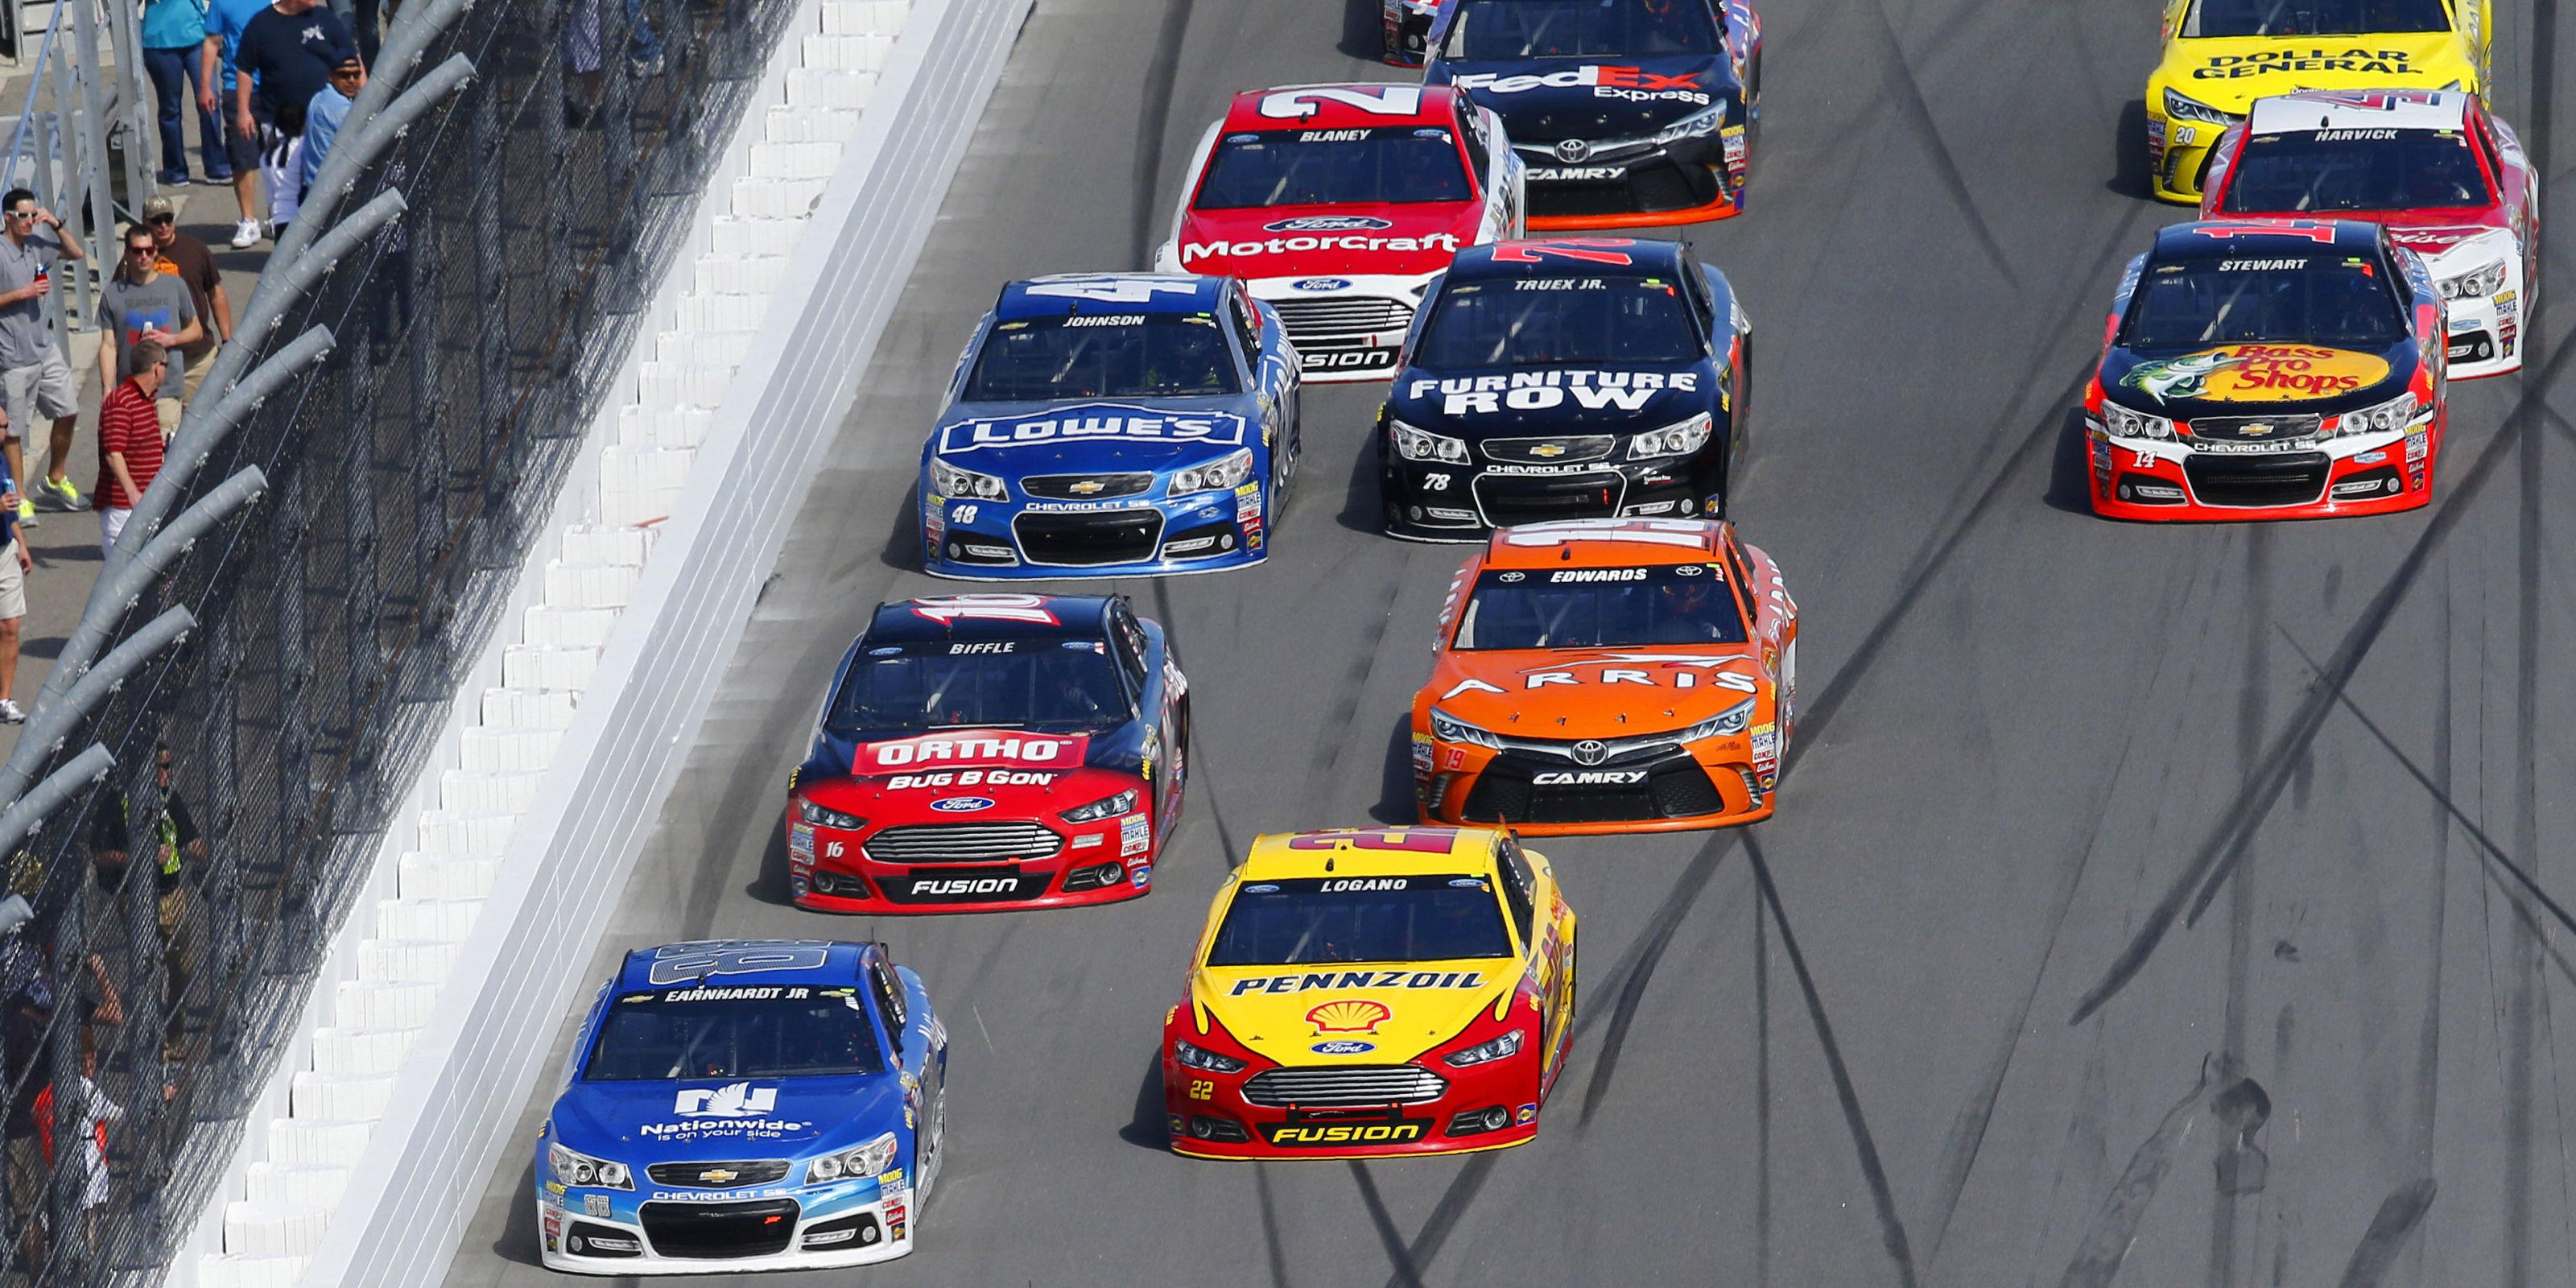 NASCAR Sprint Cup Moves to NFL-Style Franchise System